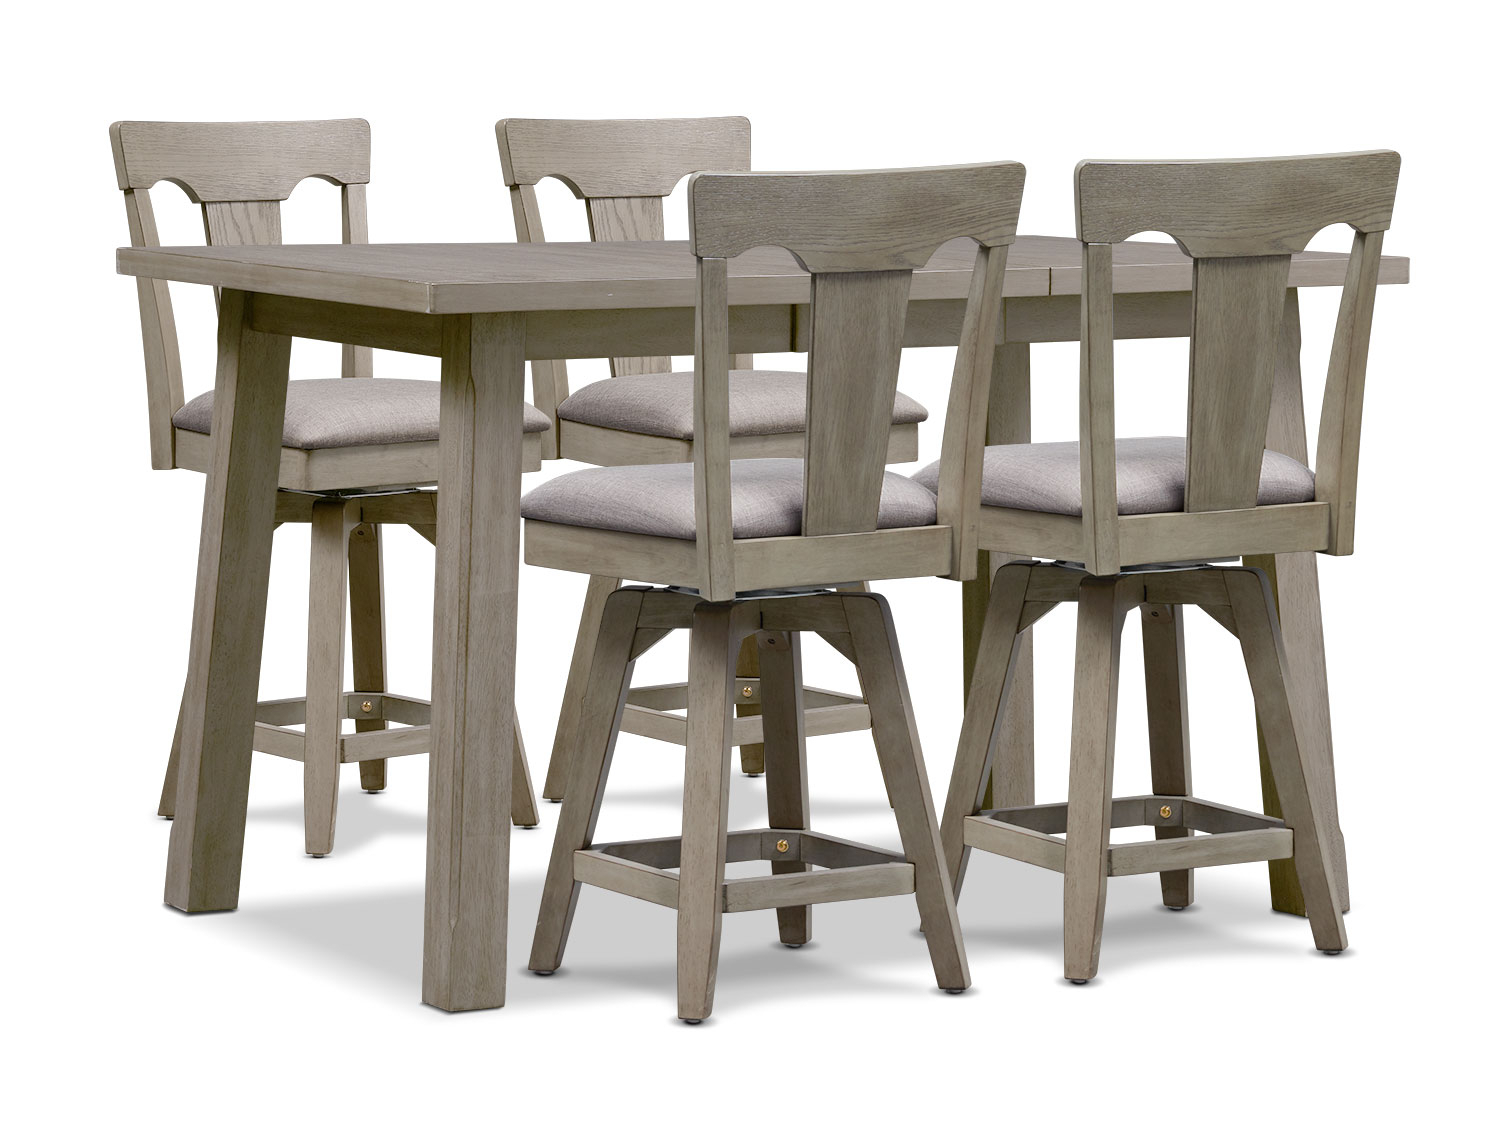 Maxton Counter Height Dining Table And 4 Stools In 2017 Carson Counter Height Tables (View 20 of 25)